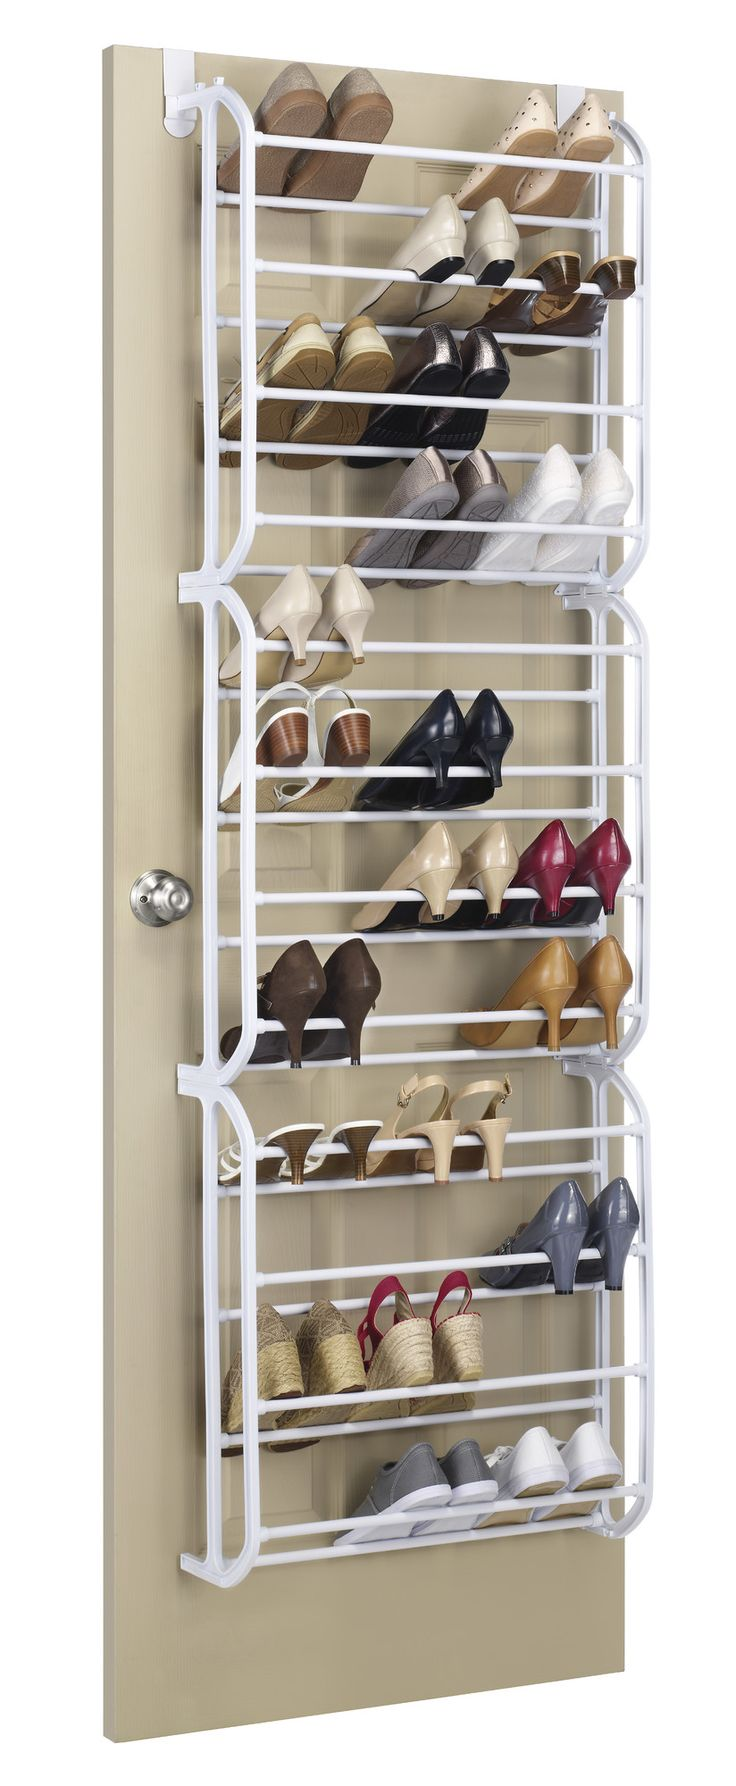 Features:  -Hangs over an inside door.  -Holds 36 pairs of shoes.  -Made of sturdy white resin.  -1 Year warranty.  -Does not have any screw holes to make it be permanently install.  -Door hooks mater